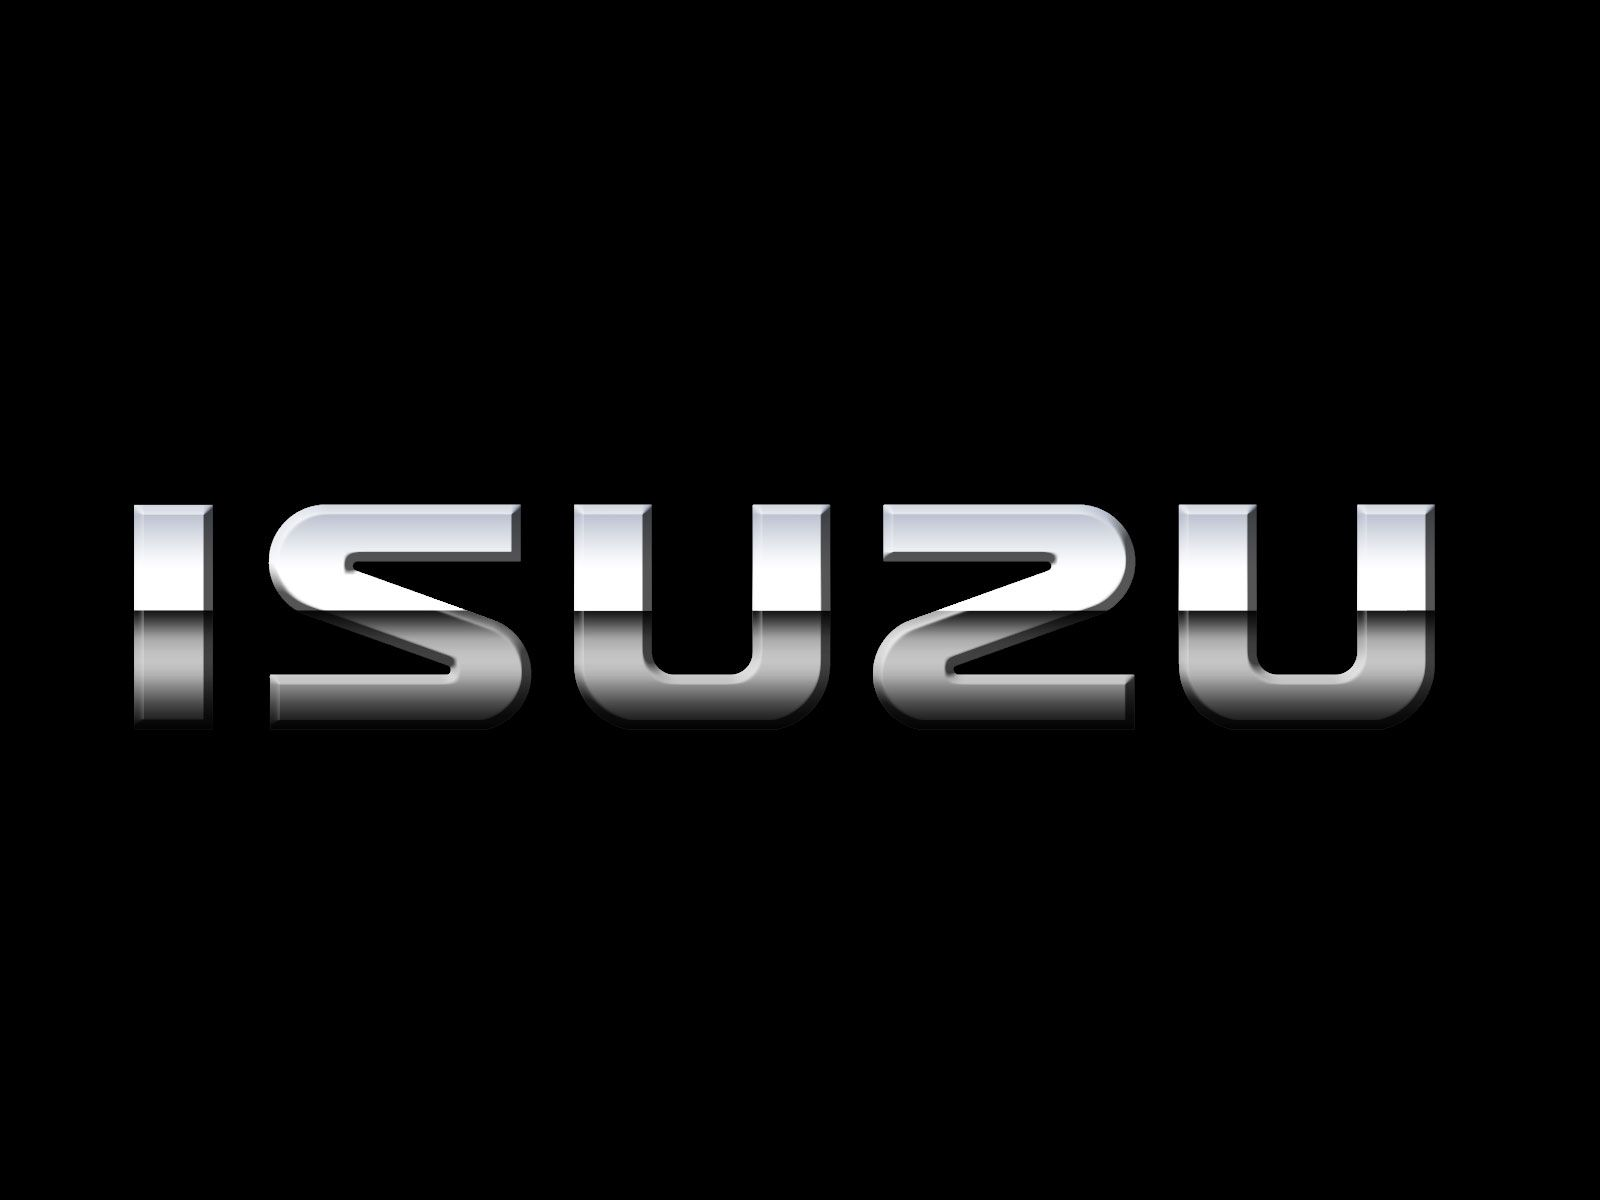 Isuzu Logo - Magari Poa » Isuzu Logo, History timeline and Latest Models